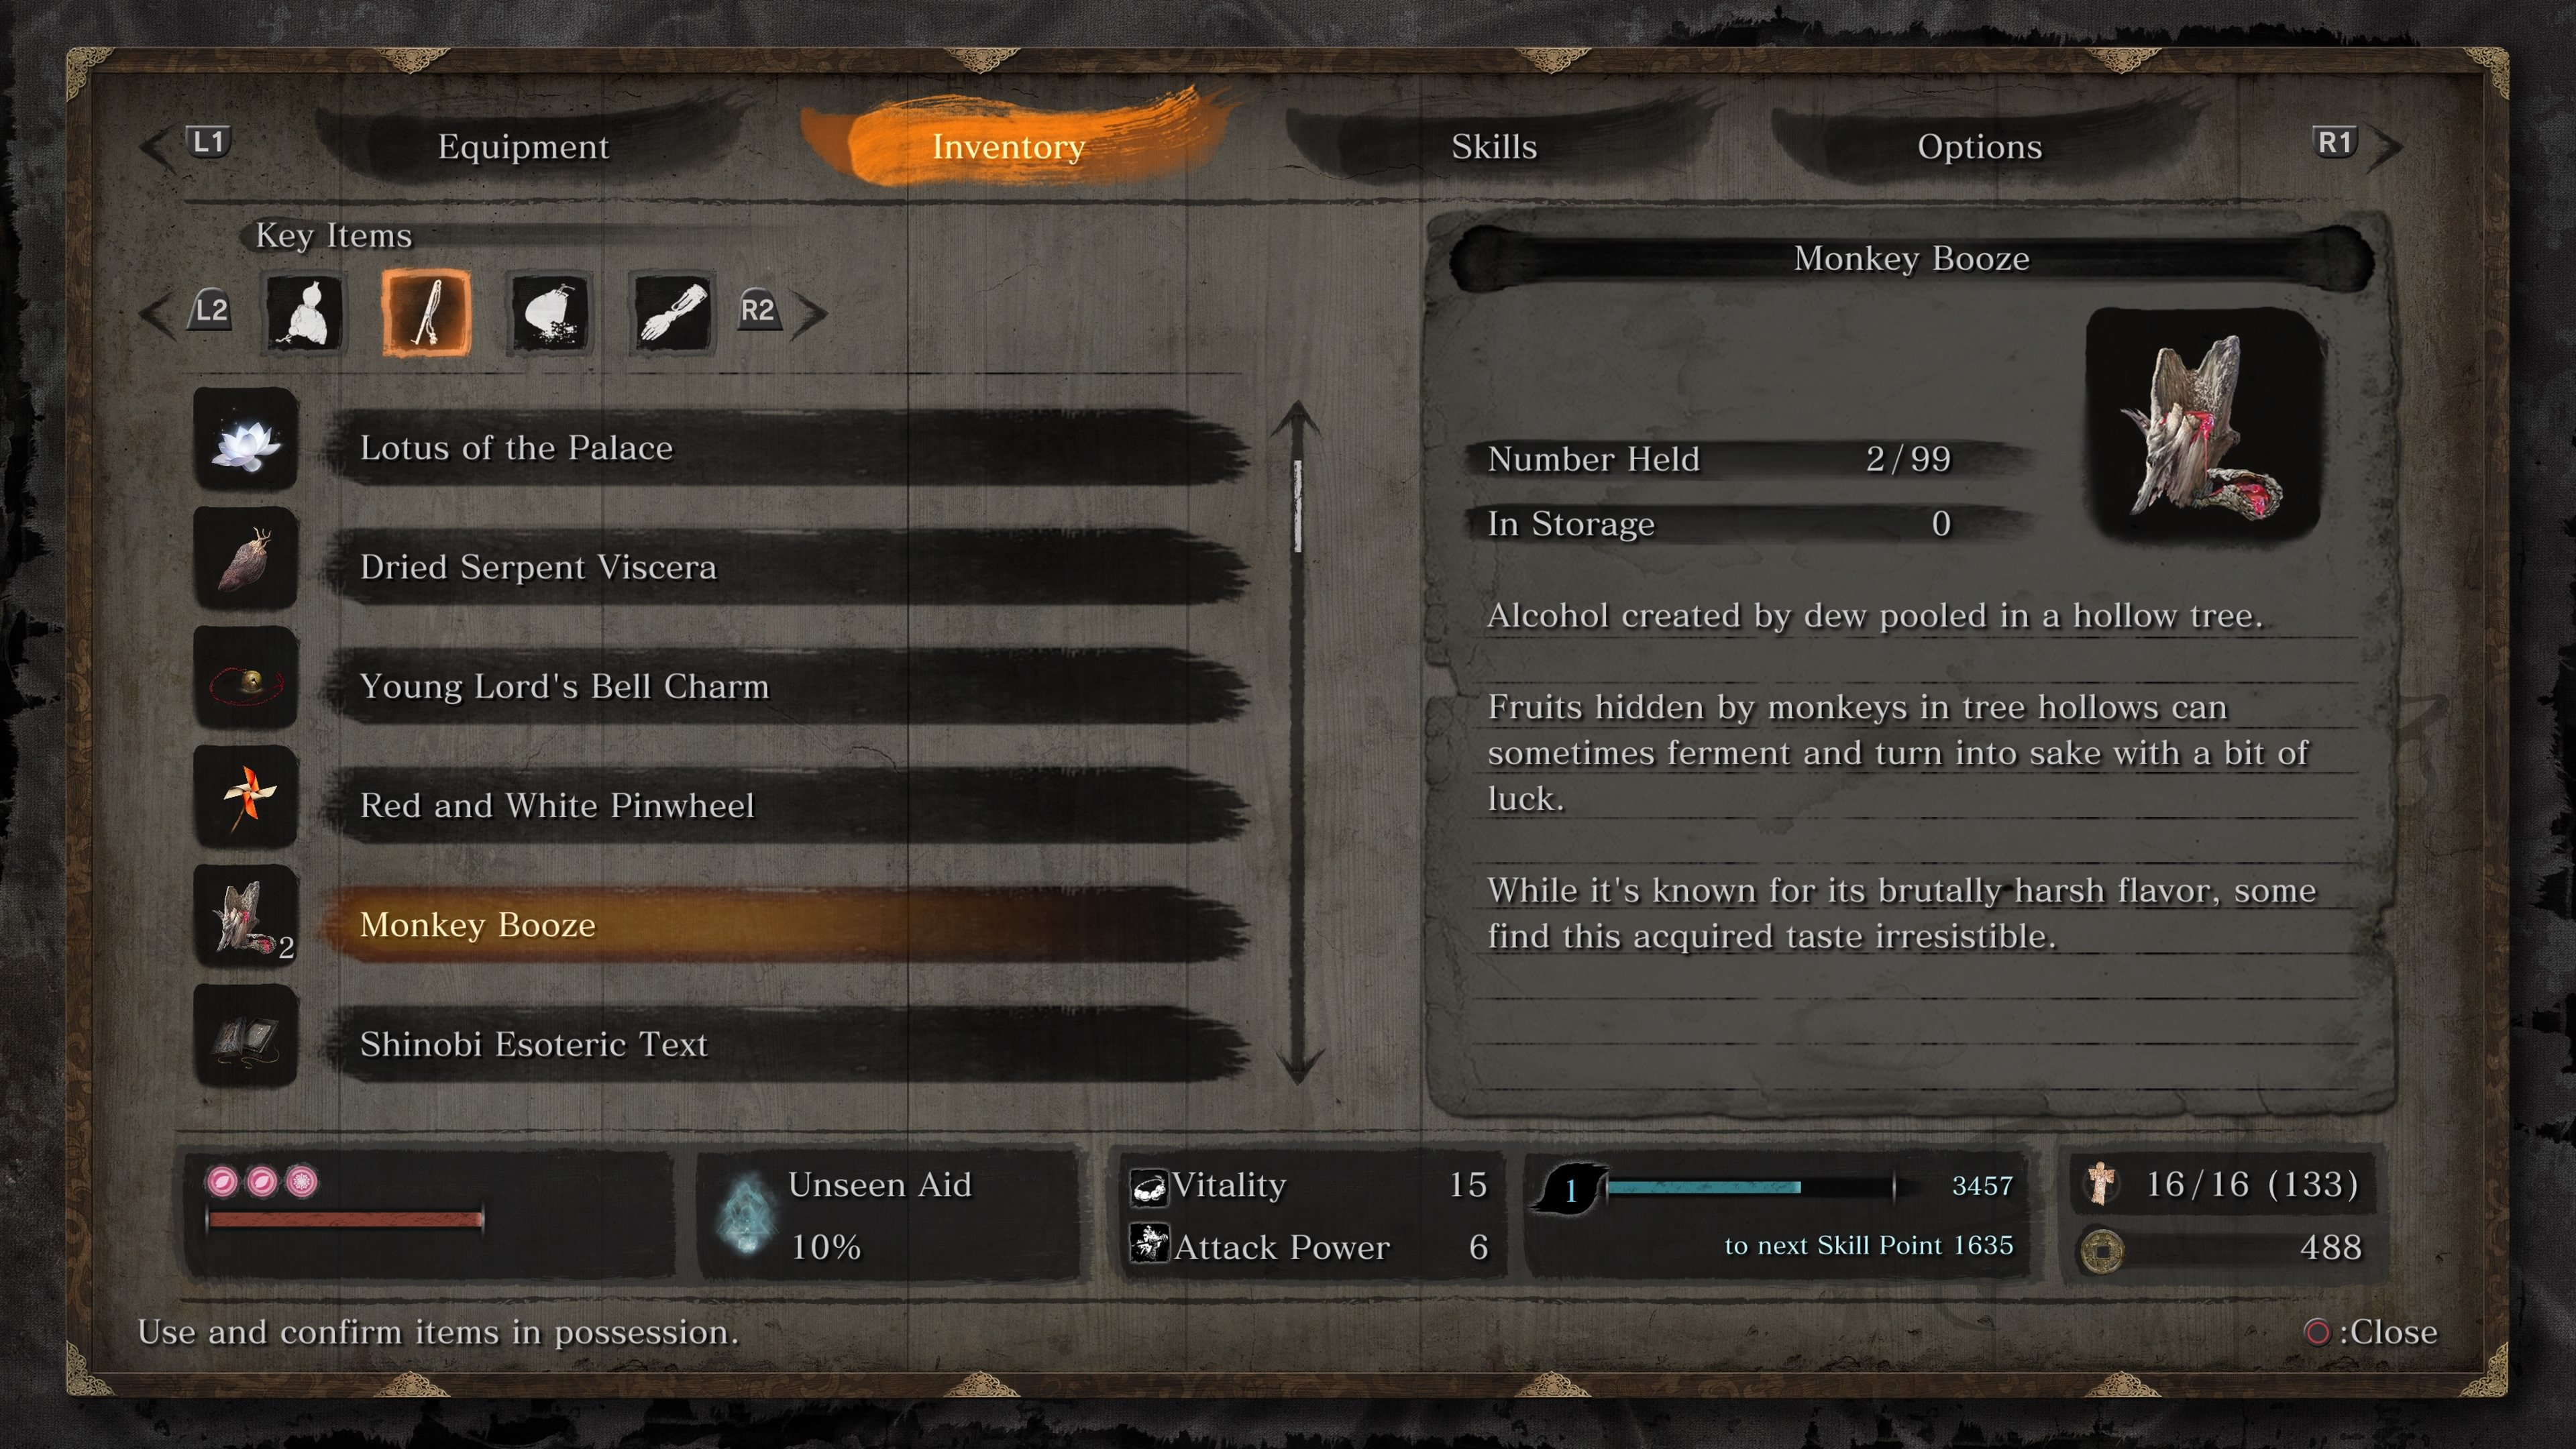 What to use Monkey Booze for in Sekiro: Shadows Die Twice